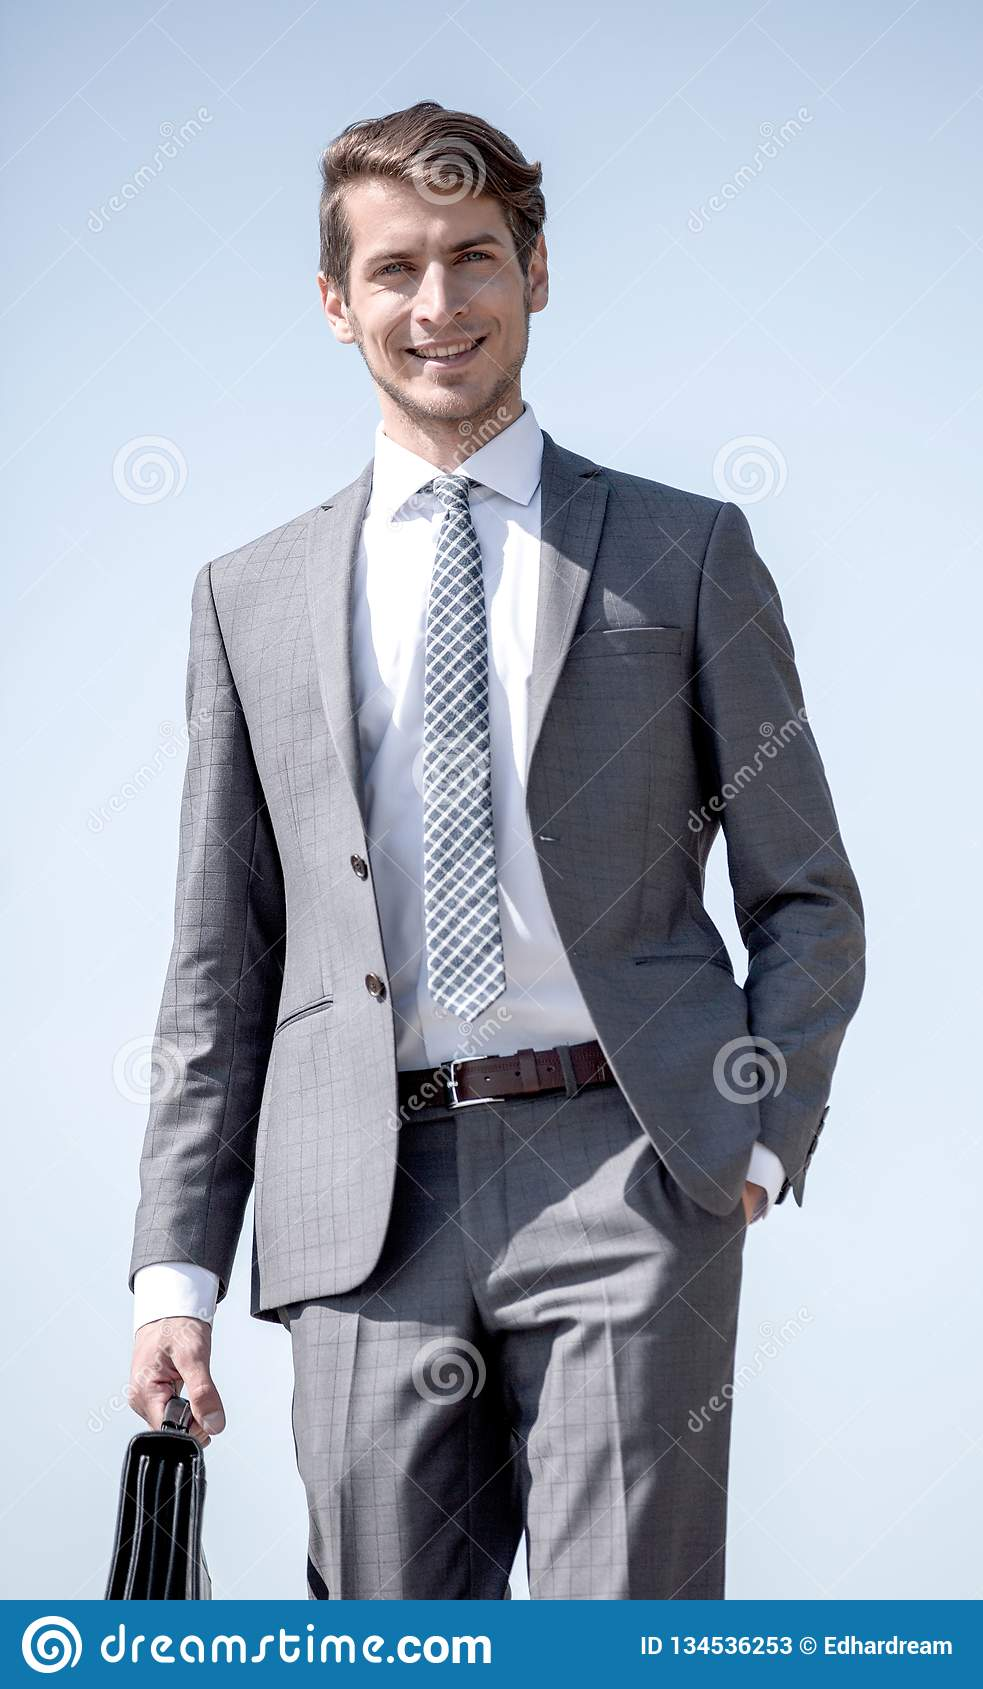 Portrait of a smiling business man. Business people stock photos